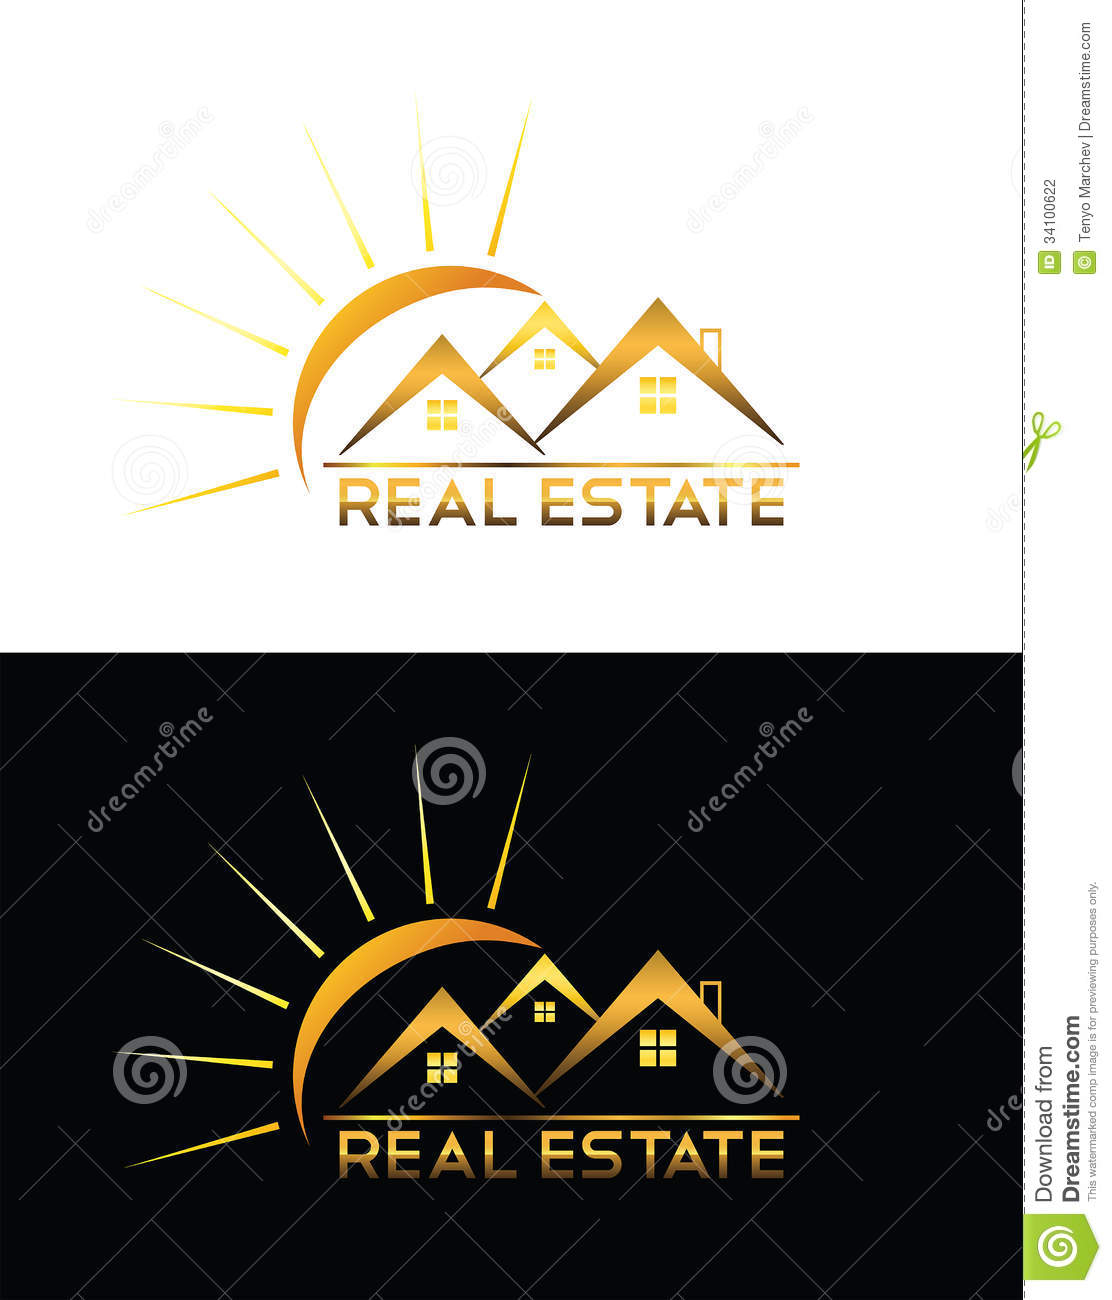 Real estate house logo stock photography image 34100622 for Modern house logo